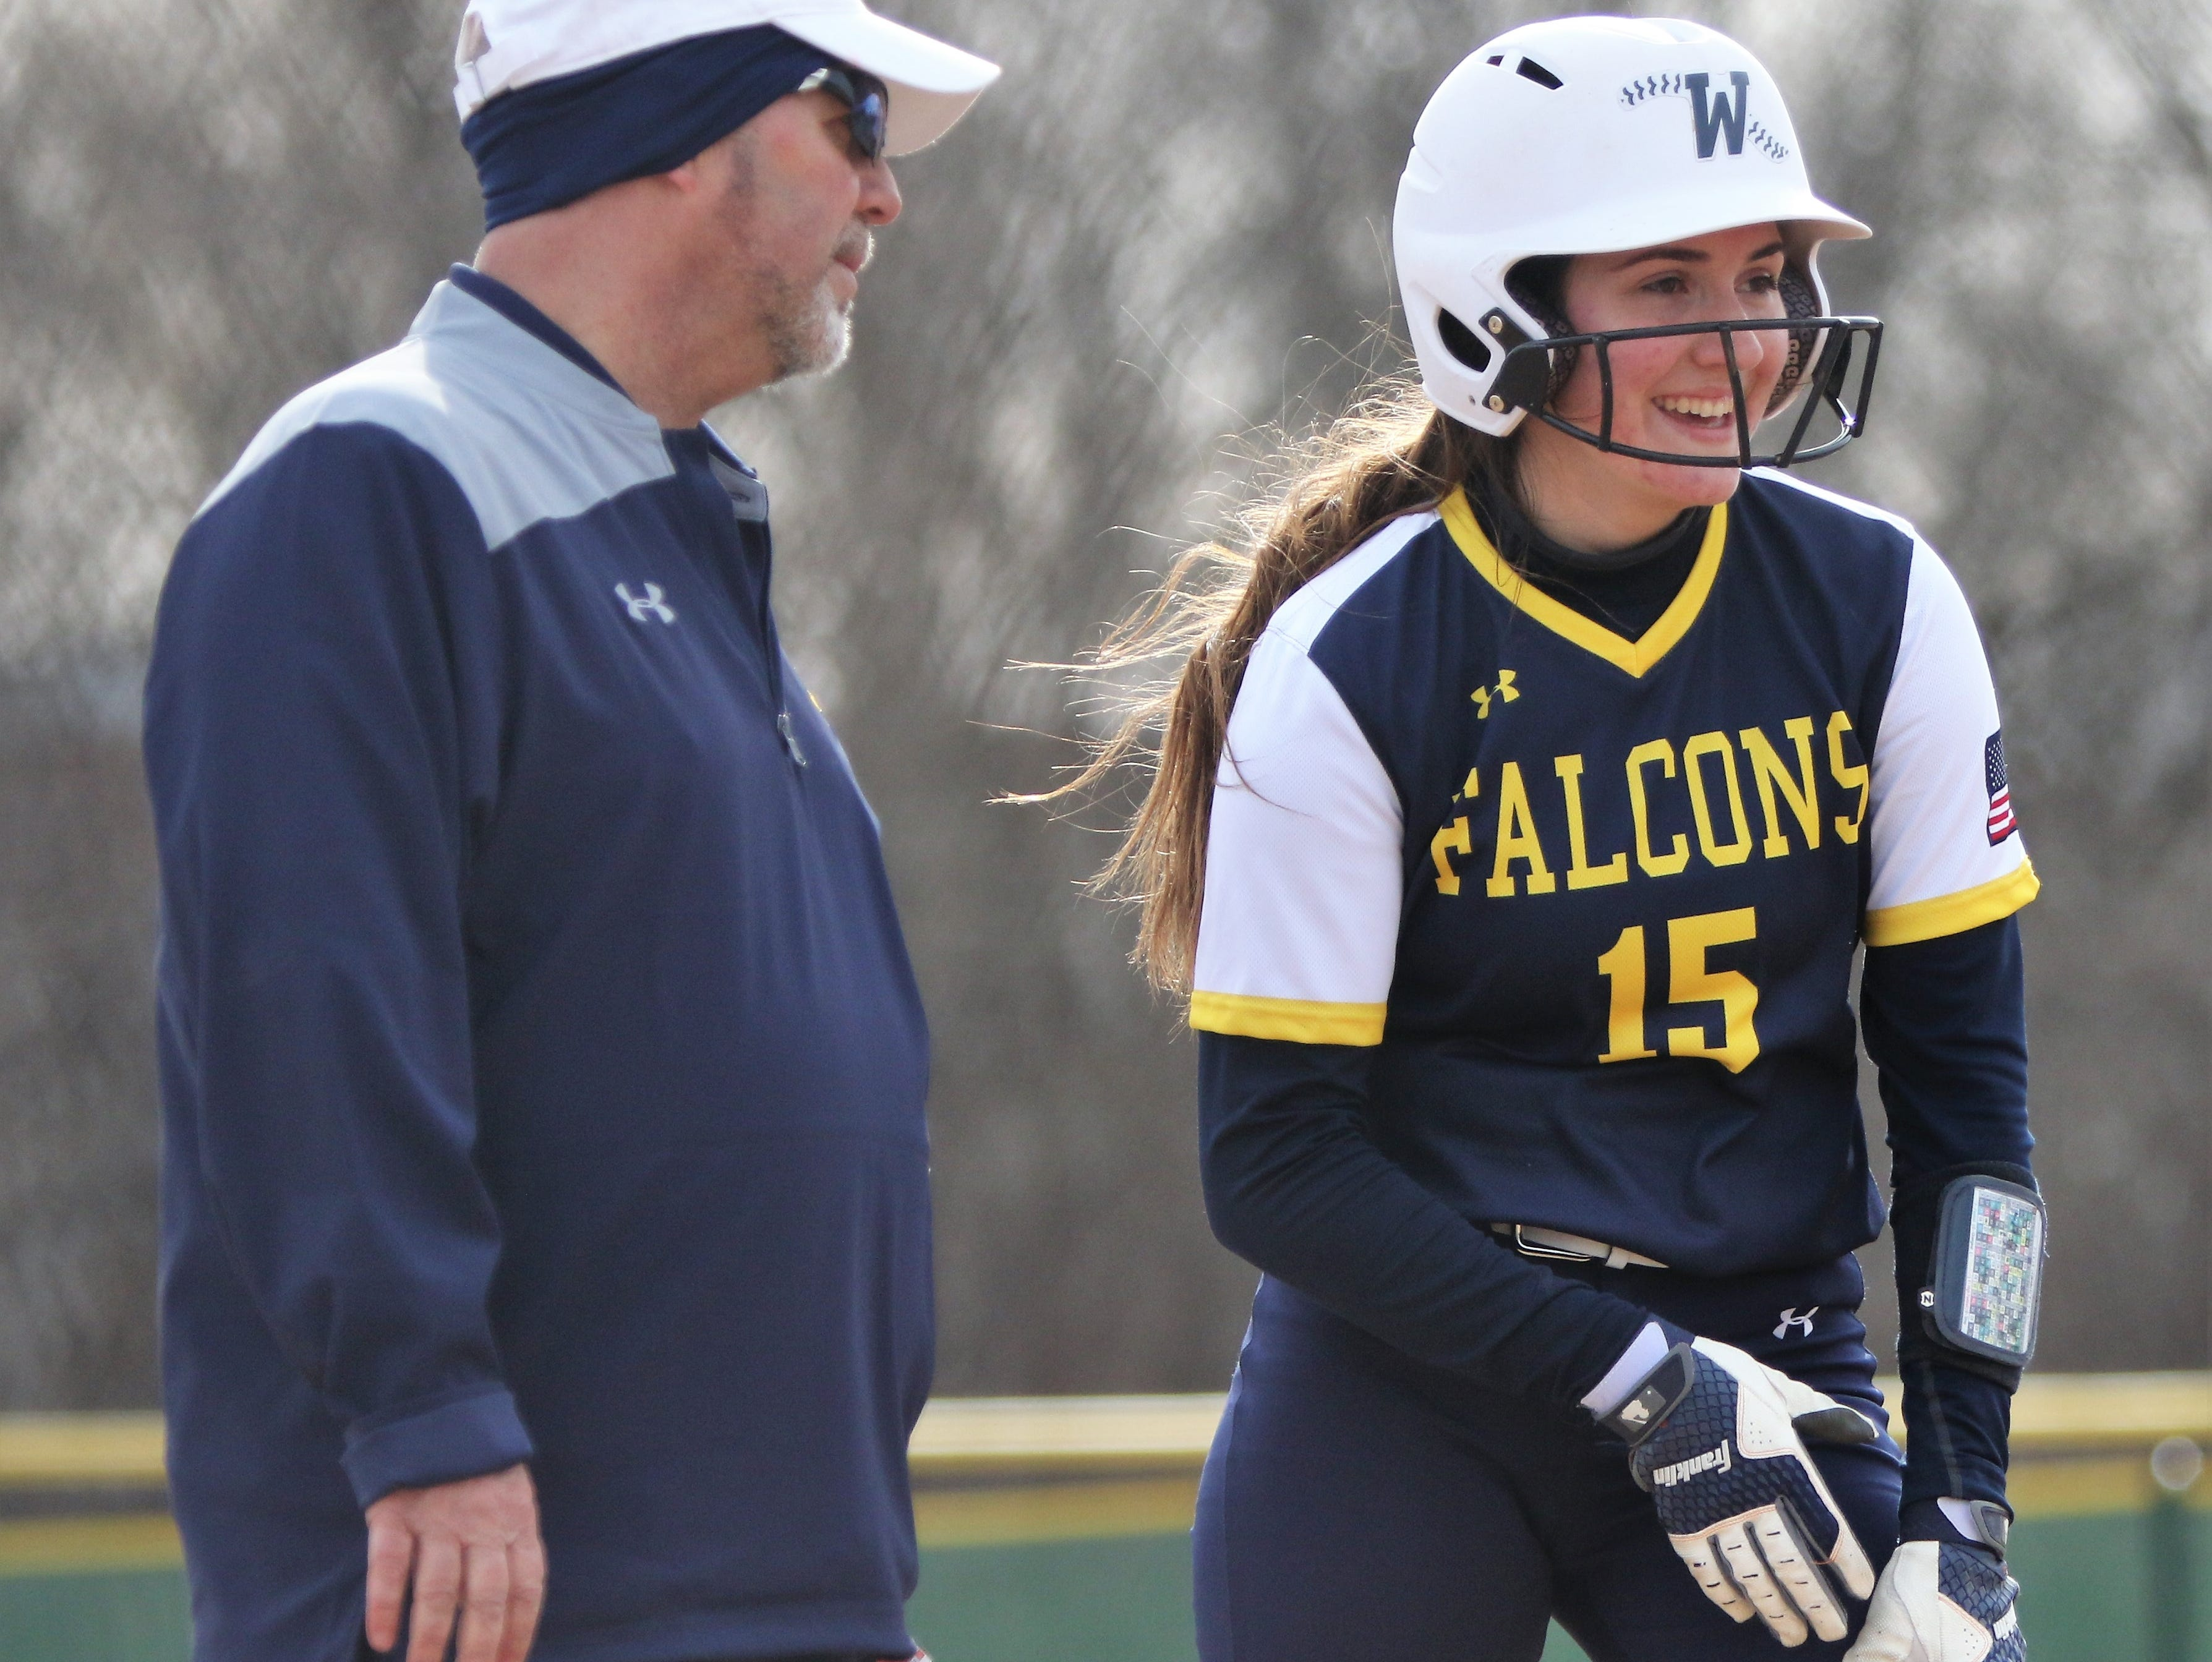 Whitnall head coach John Quinlan and junior Alyssa Trensch convene at third base during the Falcons' season-opening game against Greenfield on April 3, 2019.